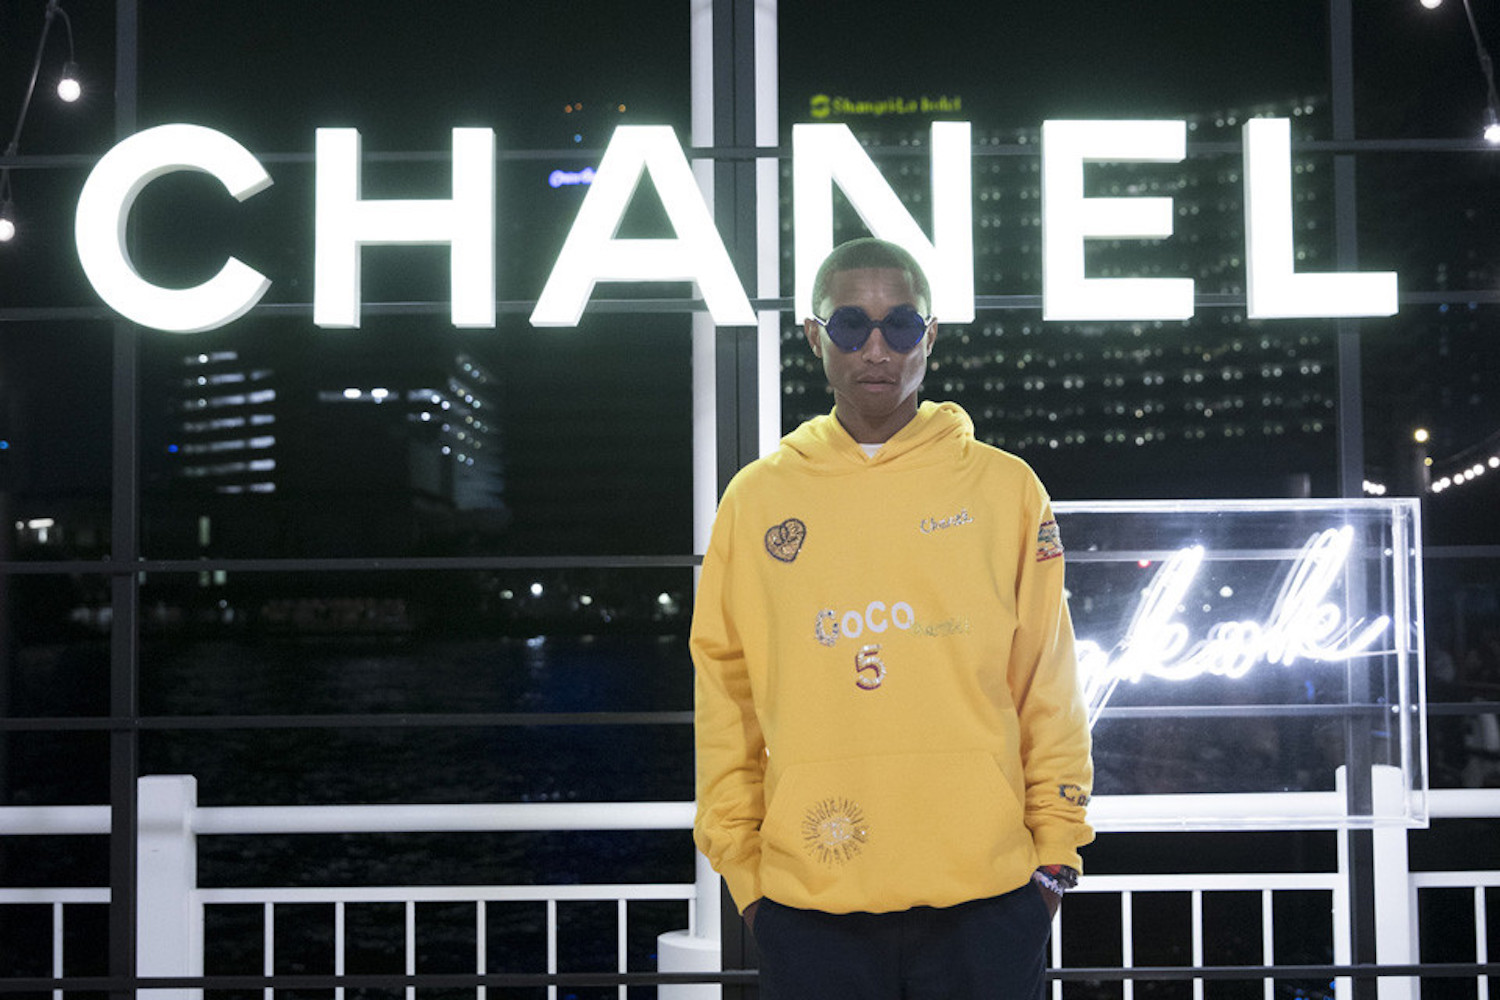 Pharrell Williams Announces Collaboration with Chanel